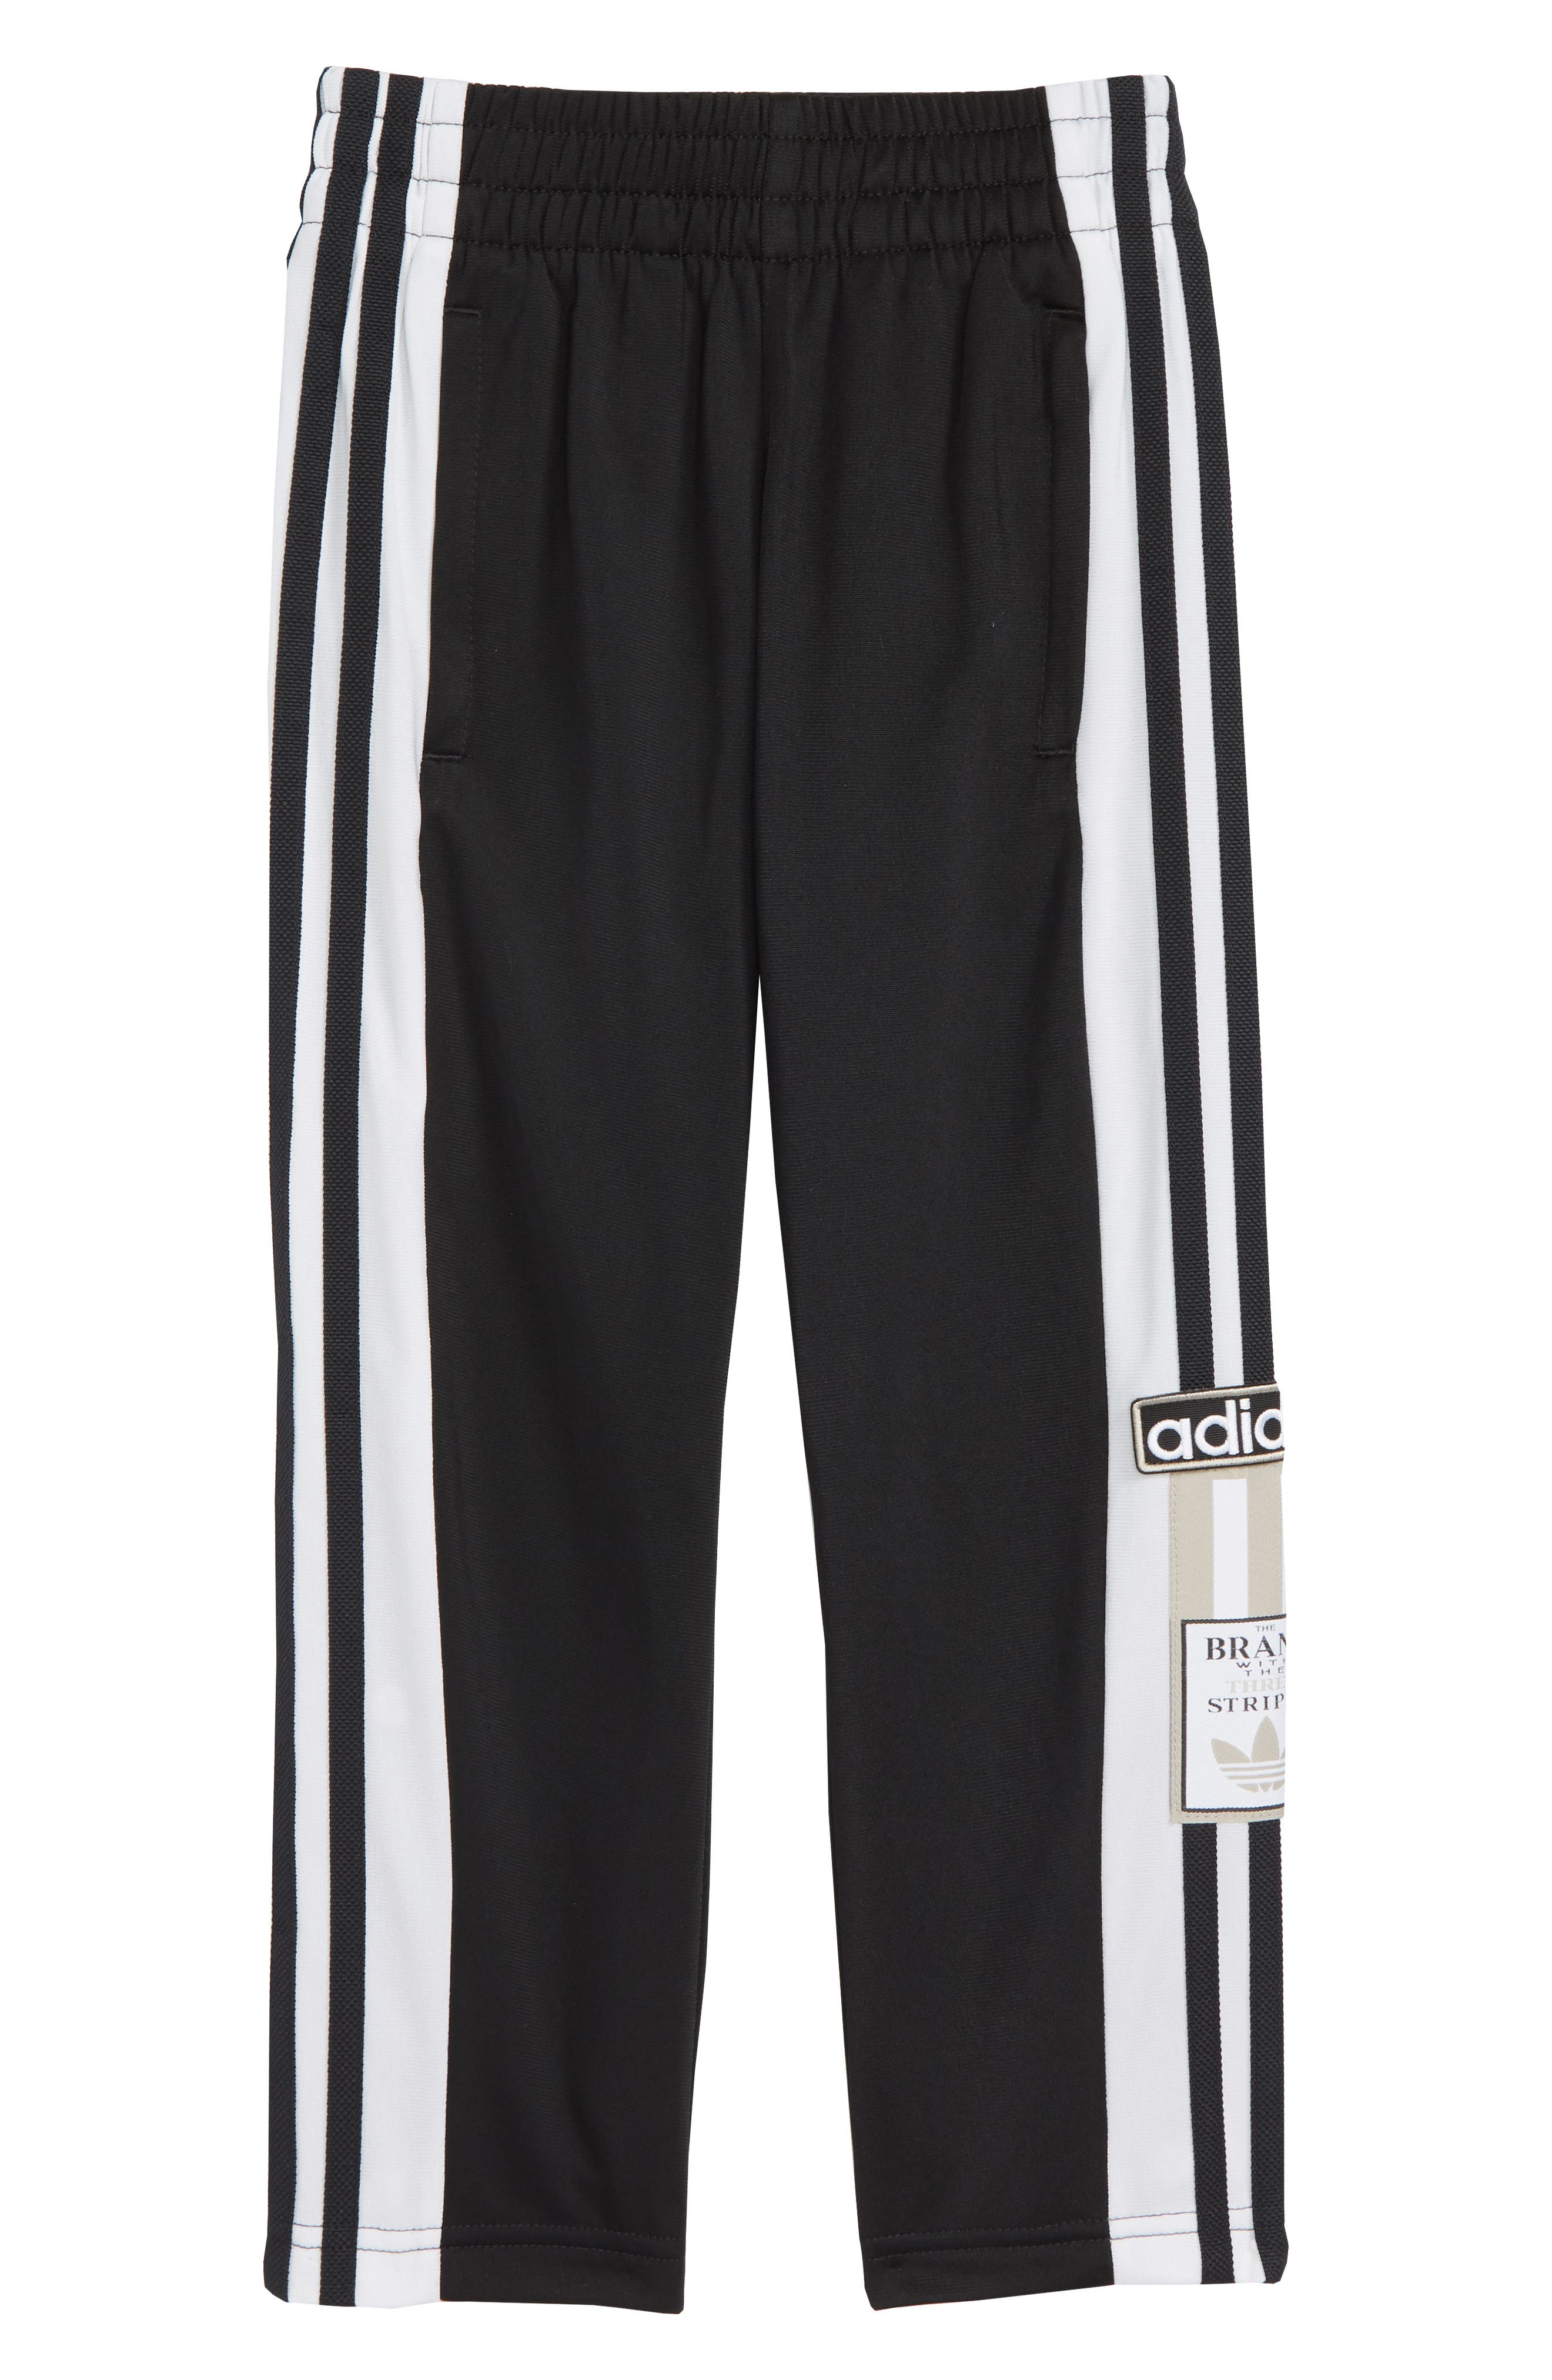 Adibreak Sweatpants,                             Main thumbnail 1, color,                             BLACK/ WHITE